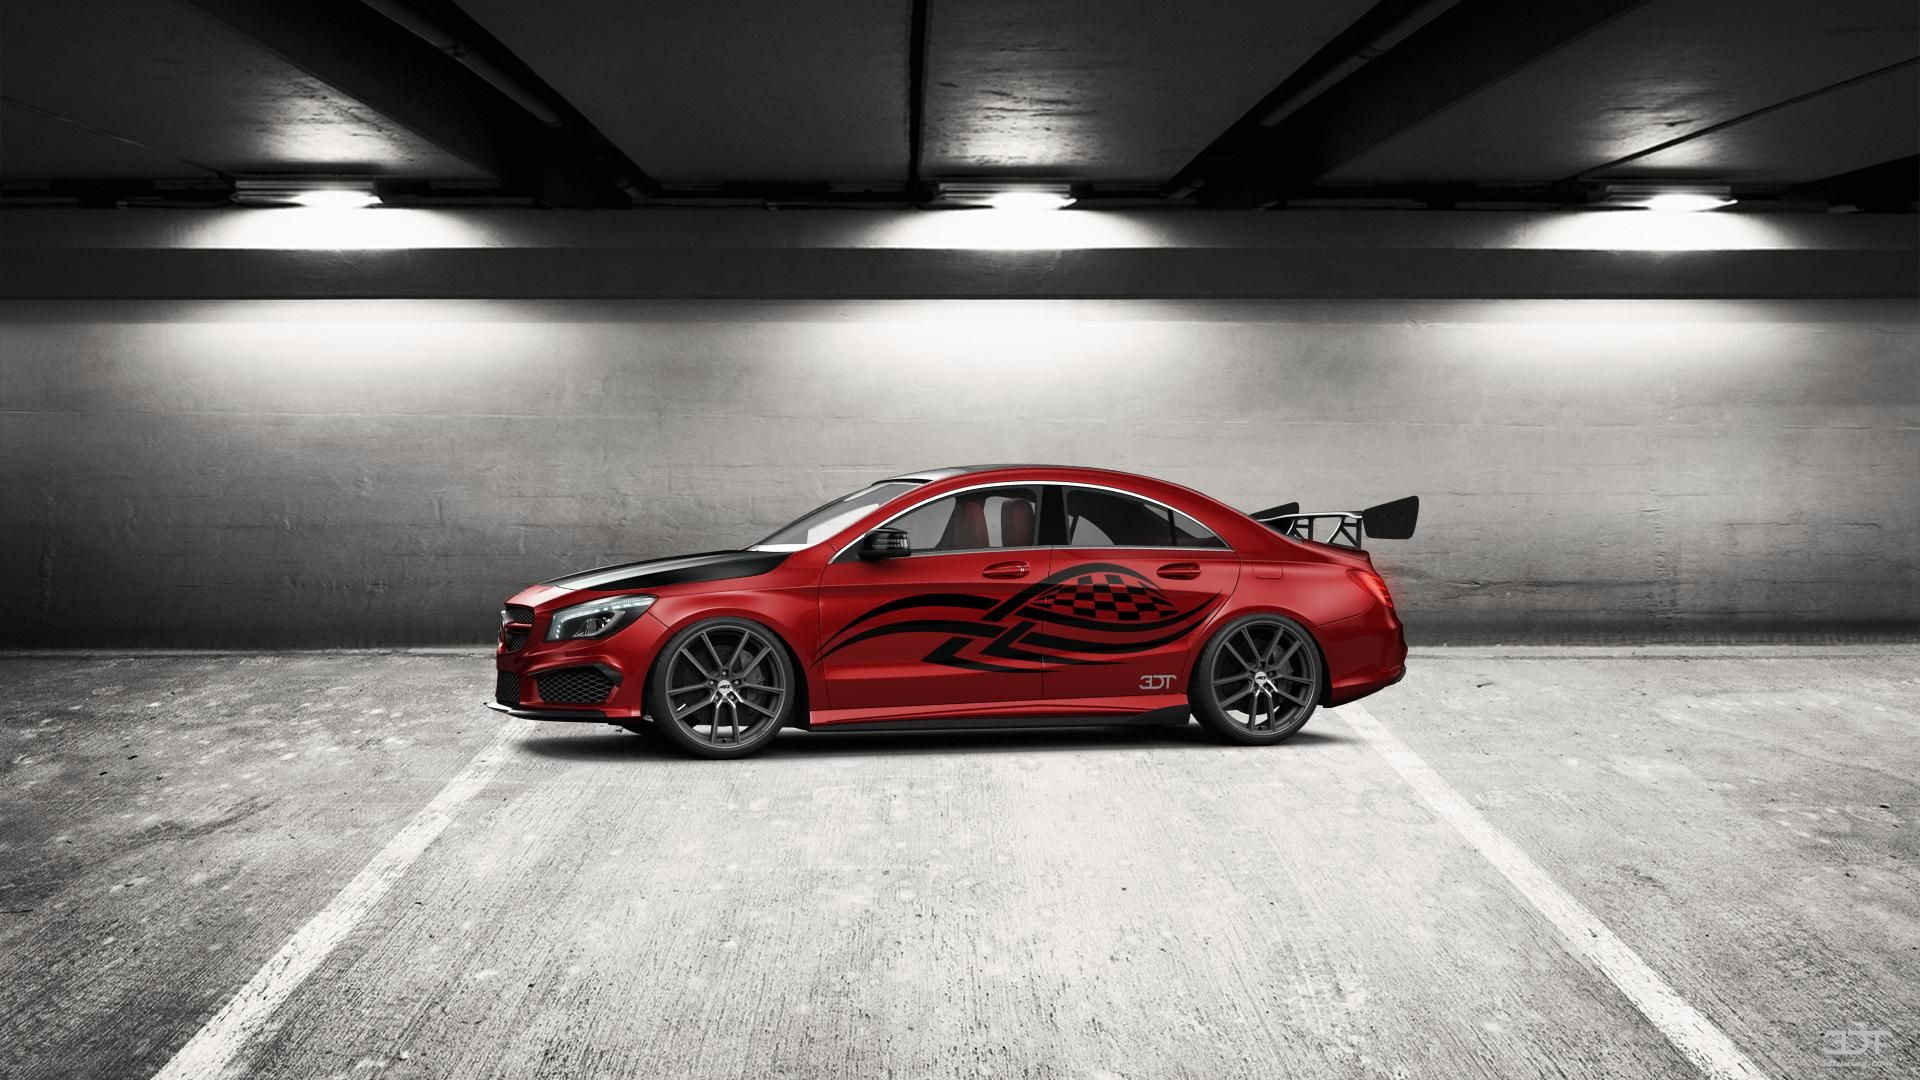 Checkout my tuning Mercedes CLAclass 2014 at 3DTuning